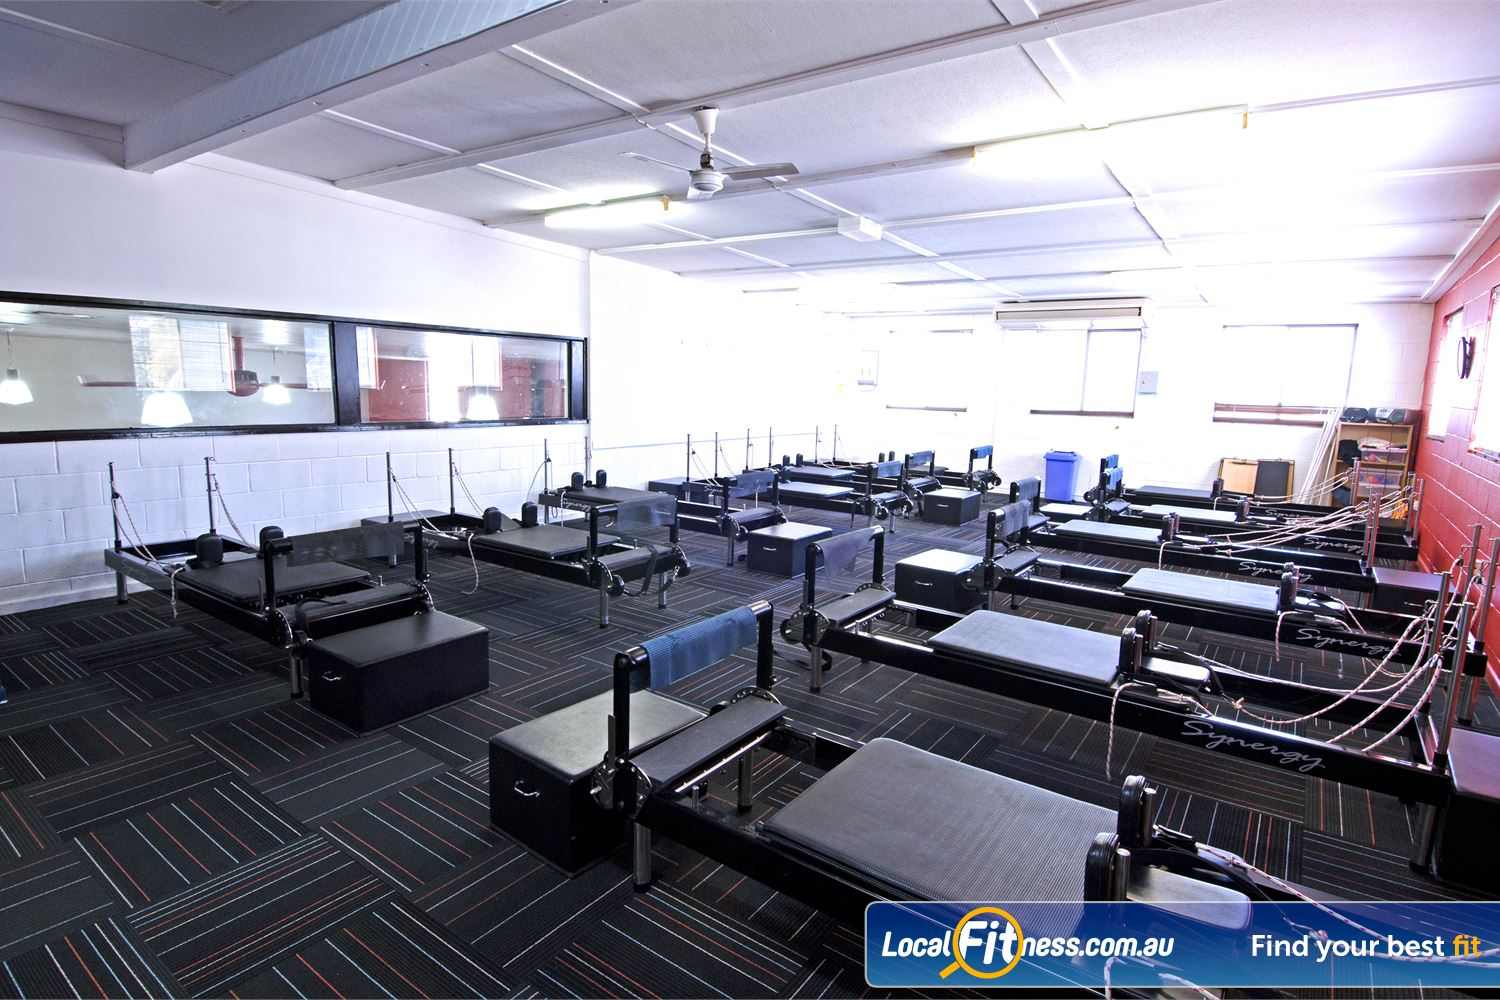 Goodlife Health Clubs Graceville The only Goodlife Health Club in Australia with a Reformer Pilates studio.